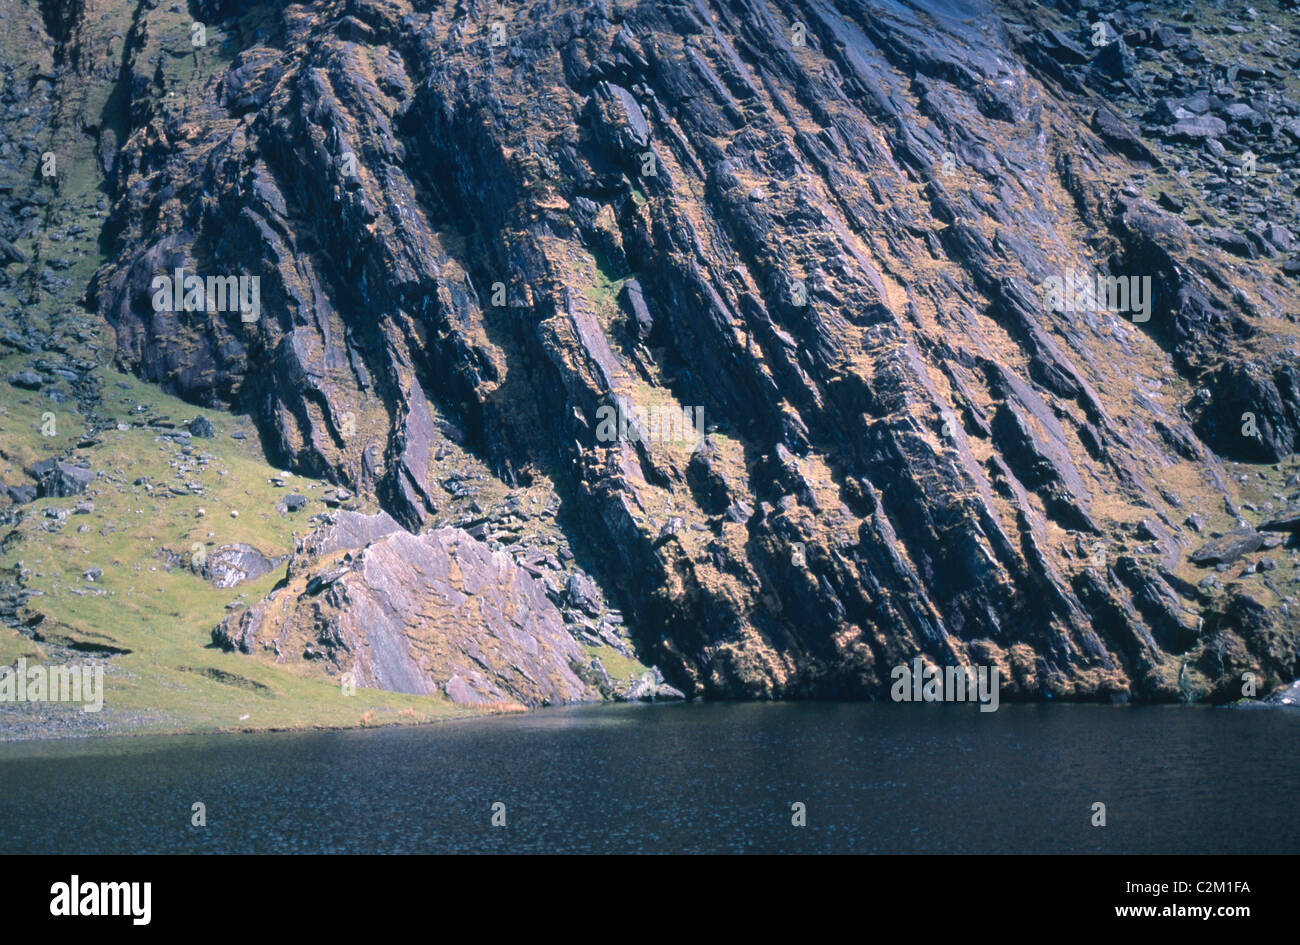 Folded sandstone rock beside a lake in Coomavoher, Knockmoyle Mountain, County Kerry, Ireland. - Stock Image